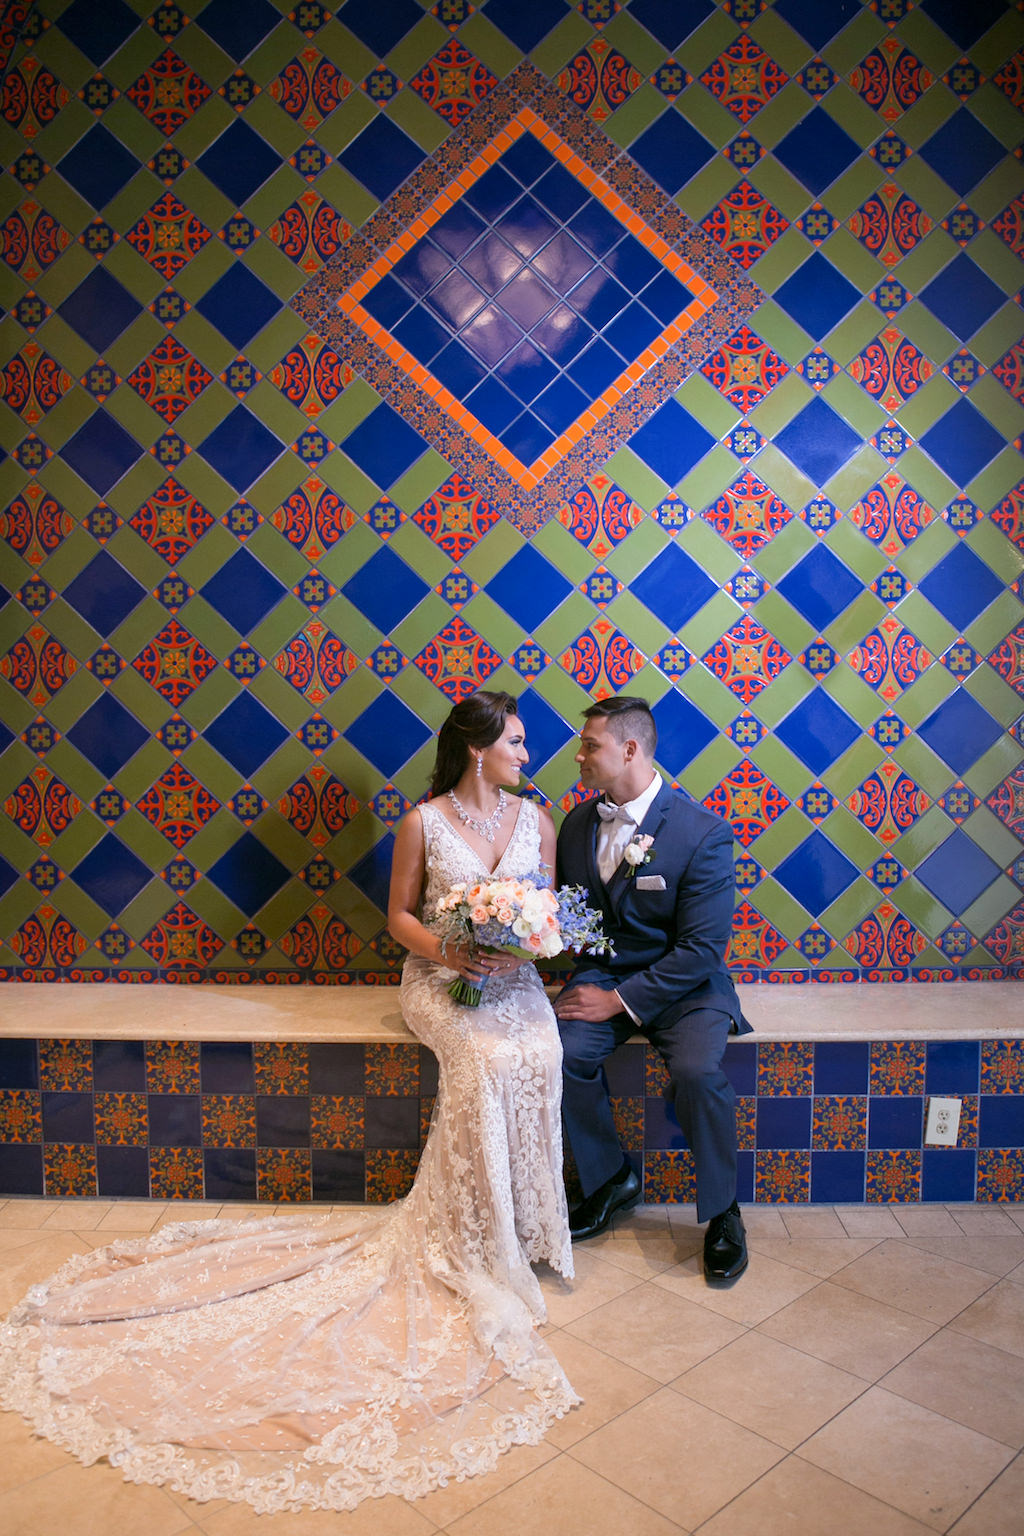 Florida Bride and Groom Wedding Portrait with Colorful Tile Backdrop | Tampa Bay Photographer Carrie Wildes Photography | Hair and Makeup Destiny and Light Hair and Makeup Group | Wedding Attire Nikki's Glitz and Glam Boutique | Florist Gabro Event Services | Hotel Wedding Venue Renaissance Tampa International Plaza